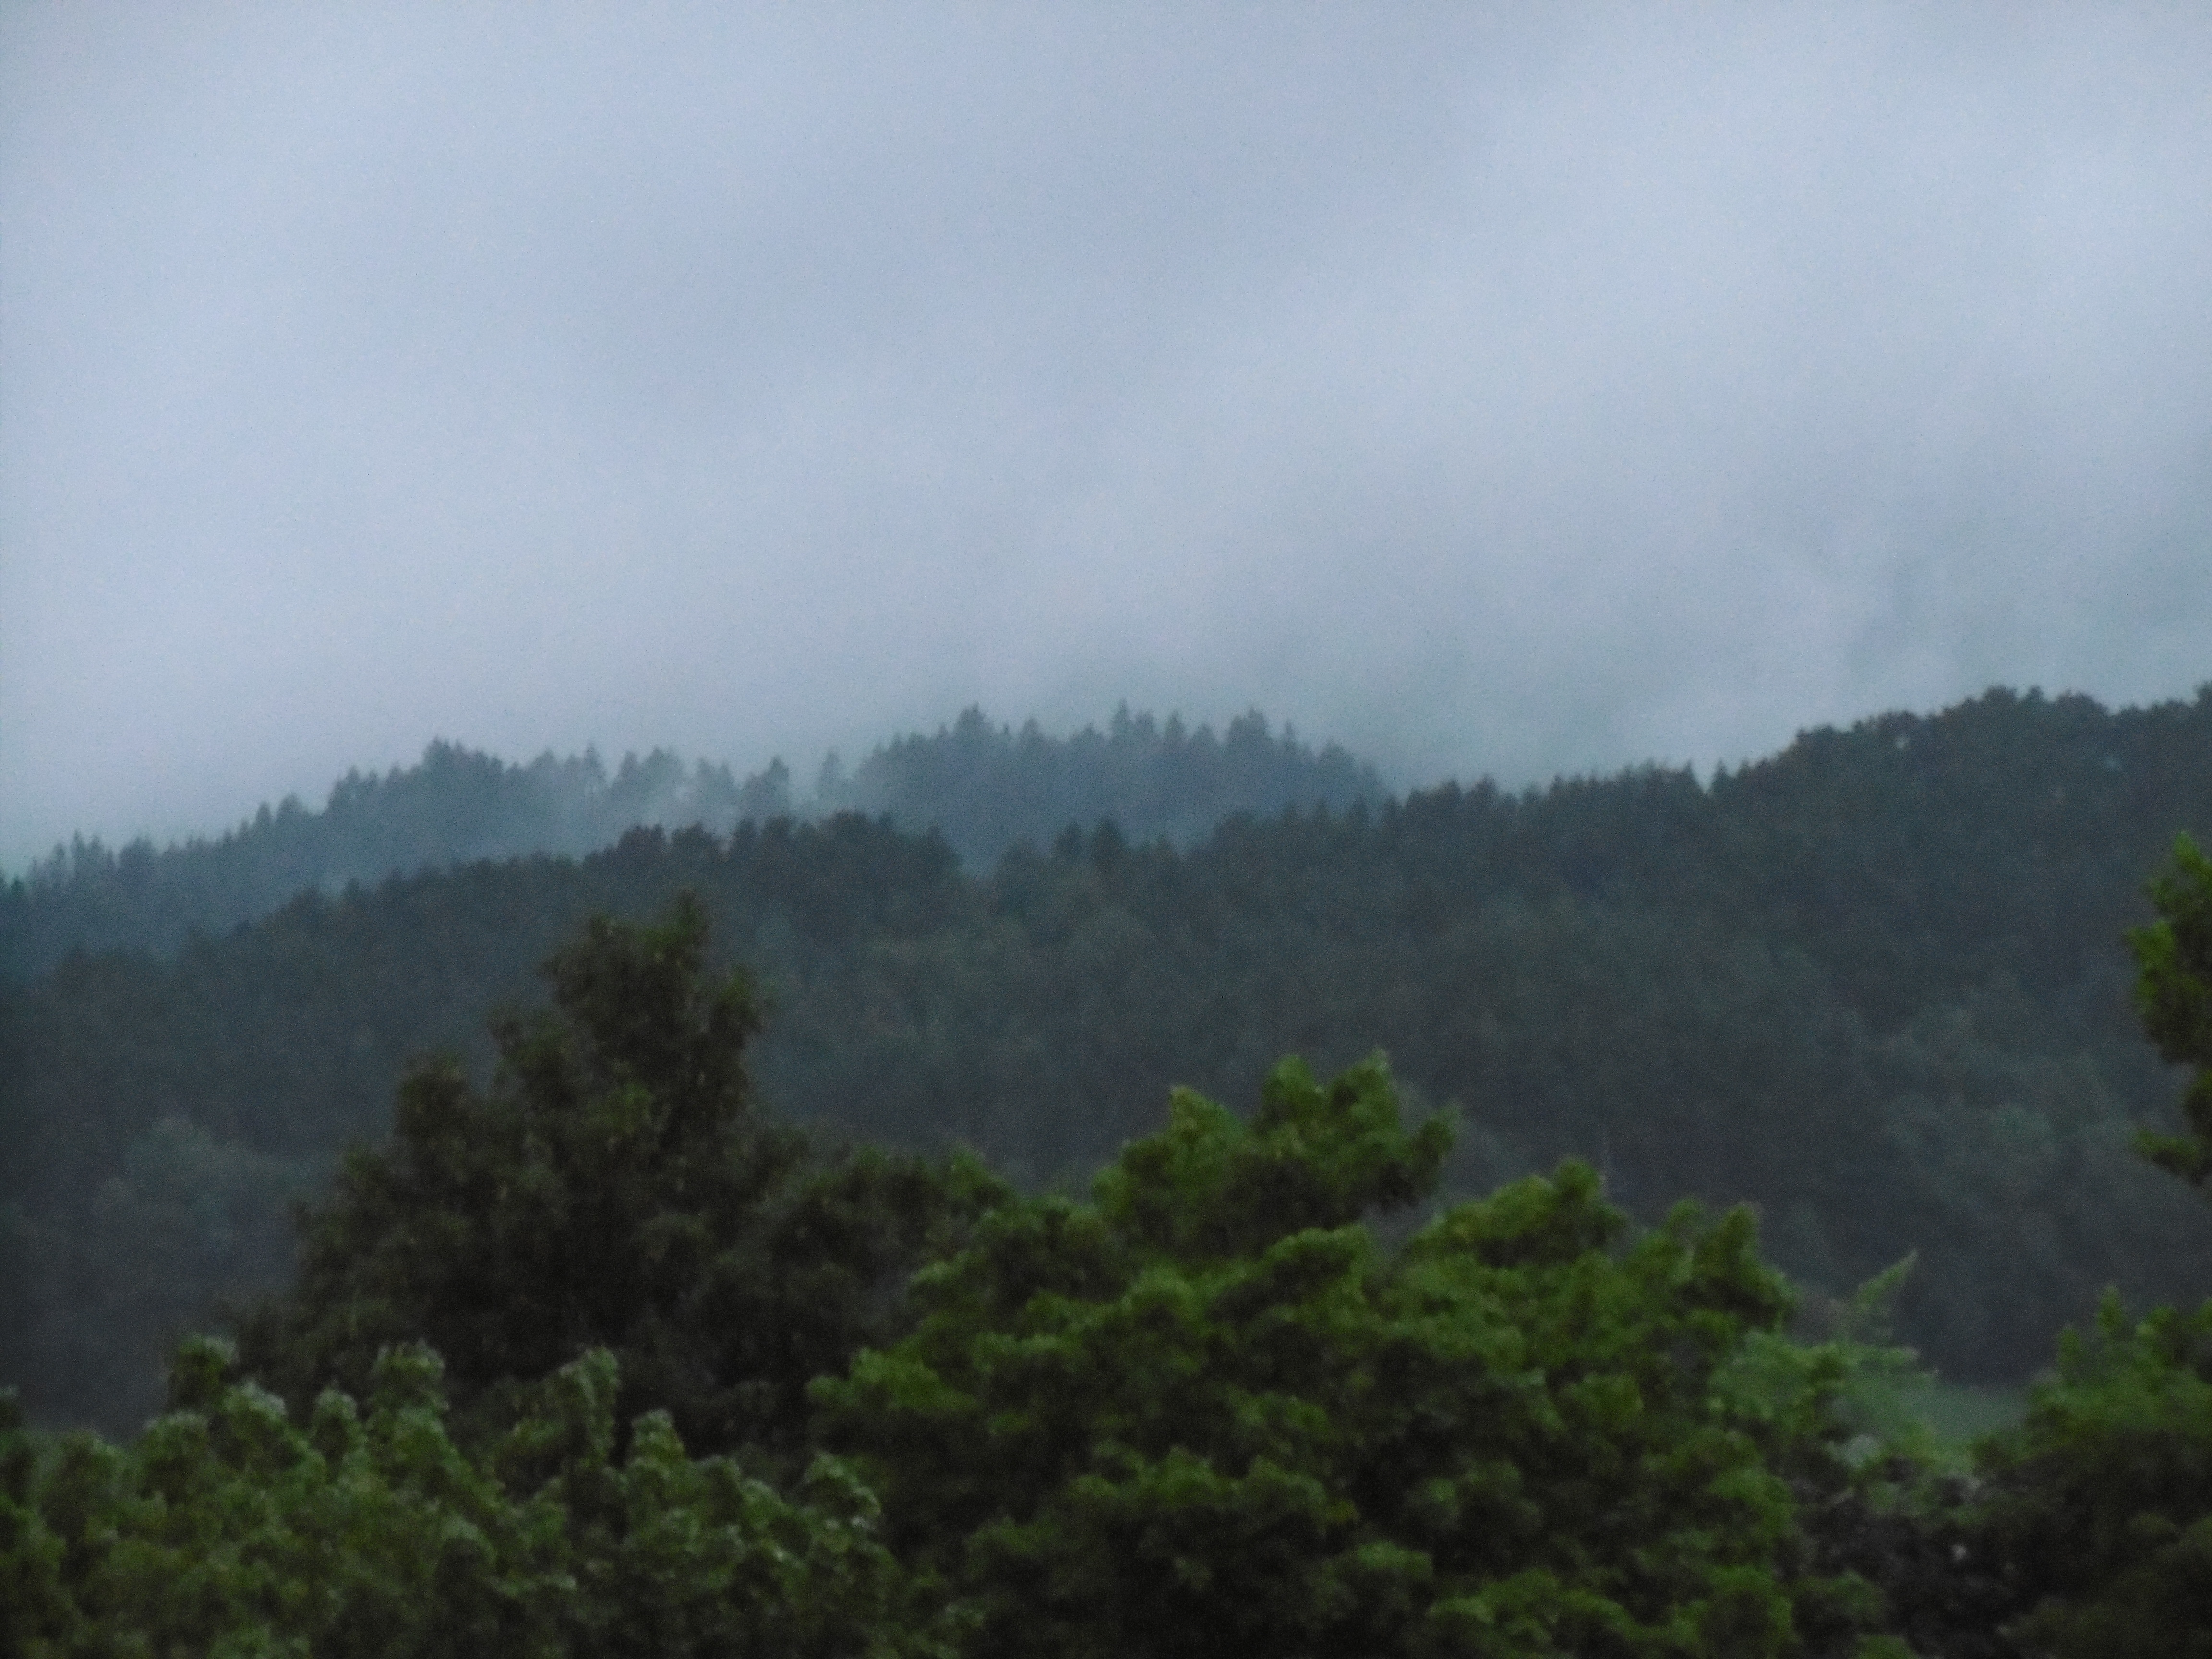 Photograph of a forest on hills disappearing into fog